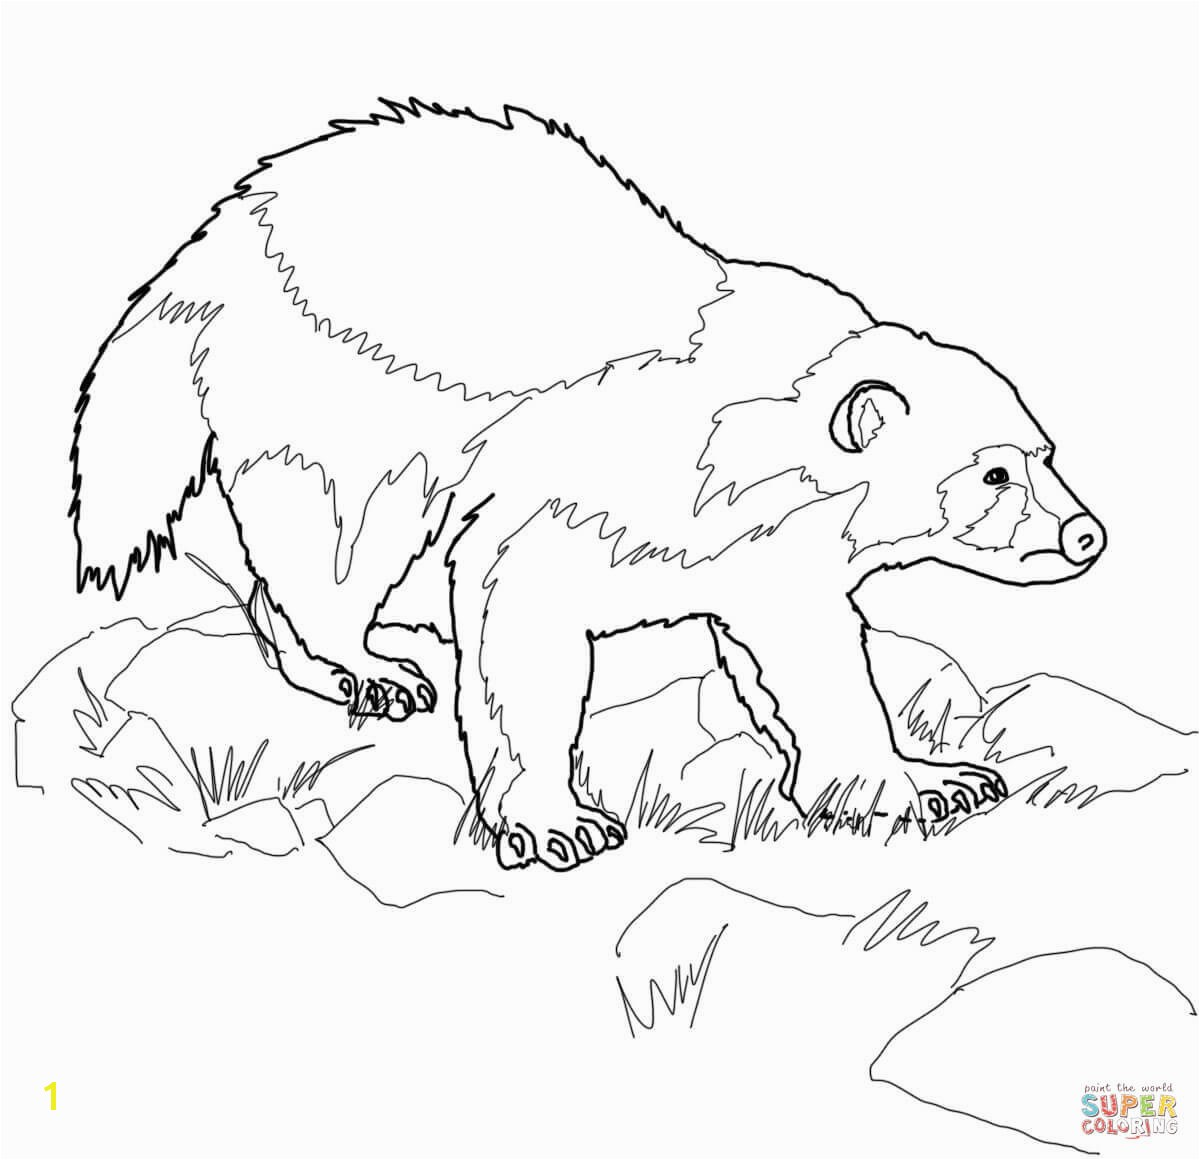 the Wolverine Animal coloring pages to view printable